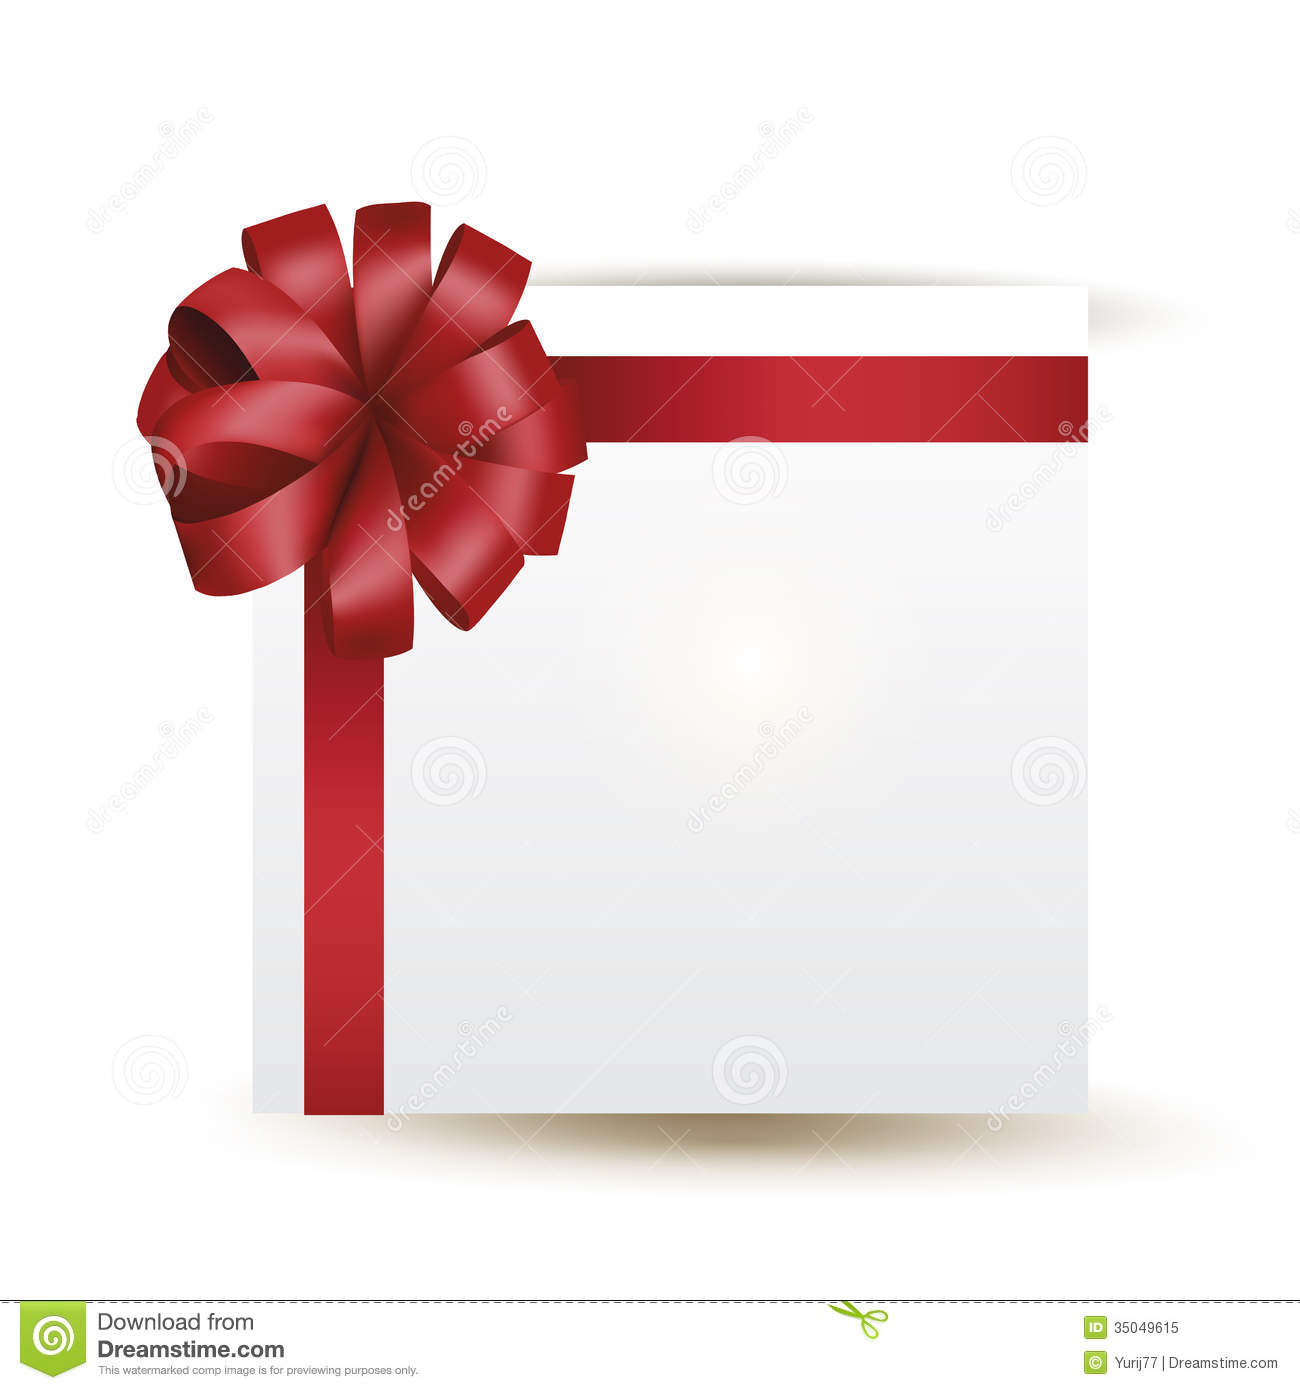 Vector Gift With Red Bow Royalty Free Stock Photo - Image: 35049615